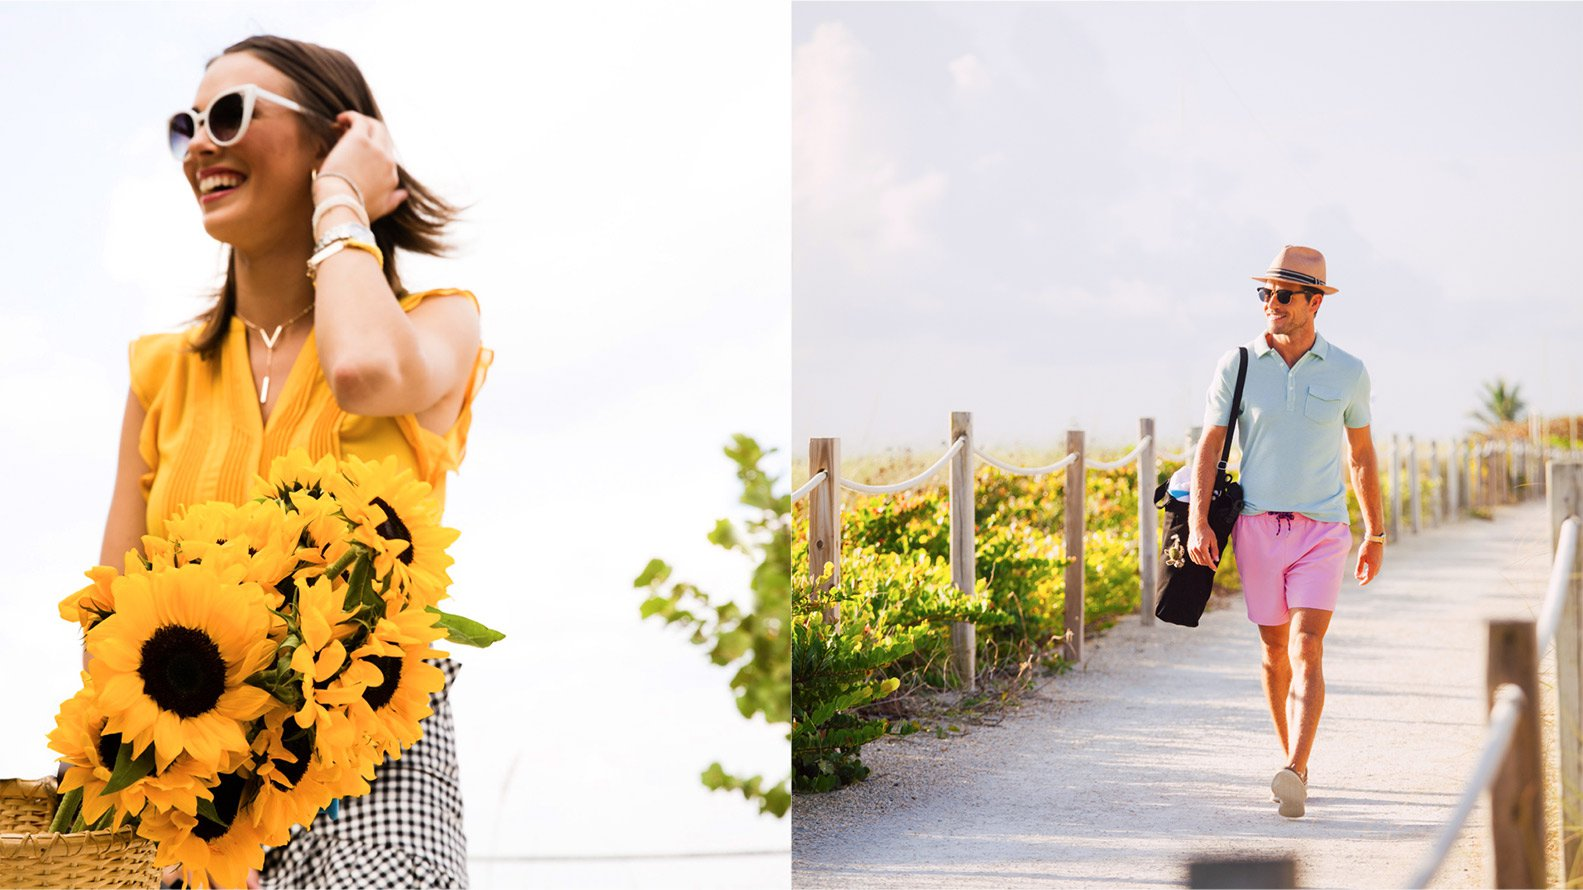 Jacober Creative Identity and Campaign for the Town of Surfside Florida - Photo of campaign photography, Left: Woman riding a bike with sunflowers. Right: Man walks down the Surfside path holding a beach bag and wearing sunglasses.